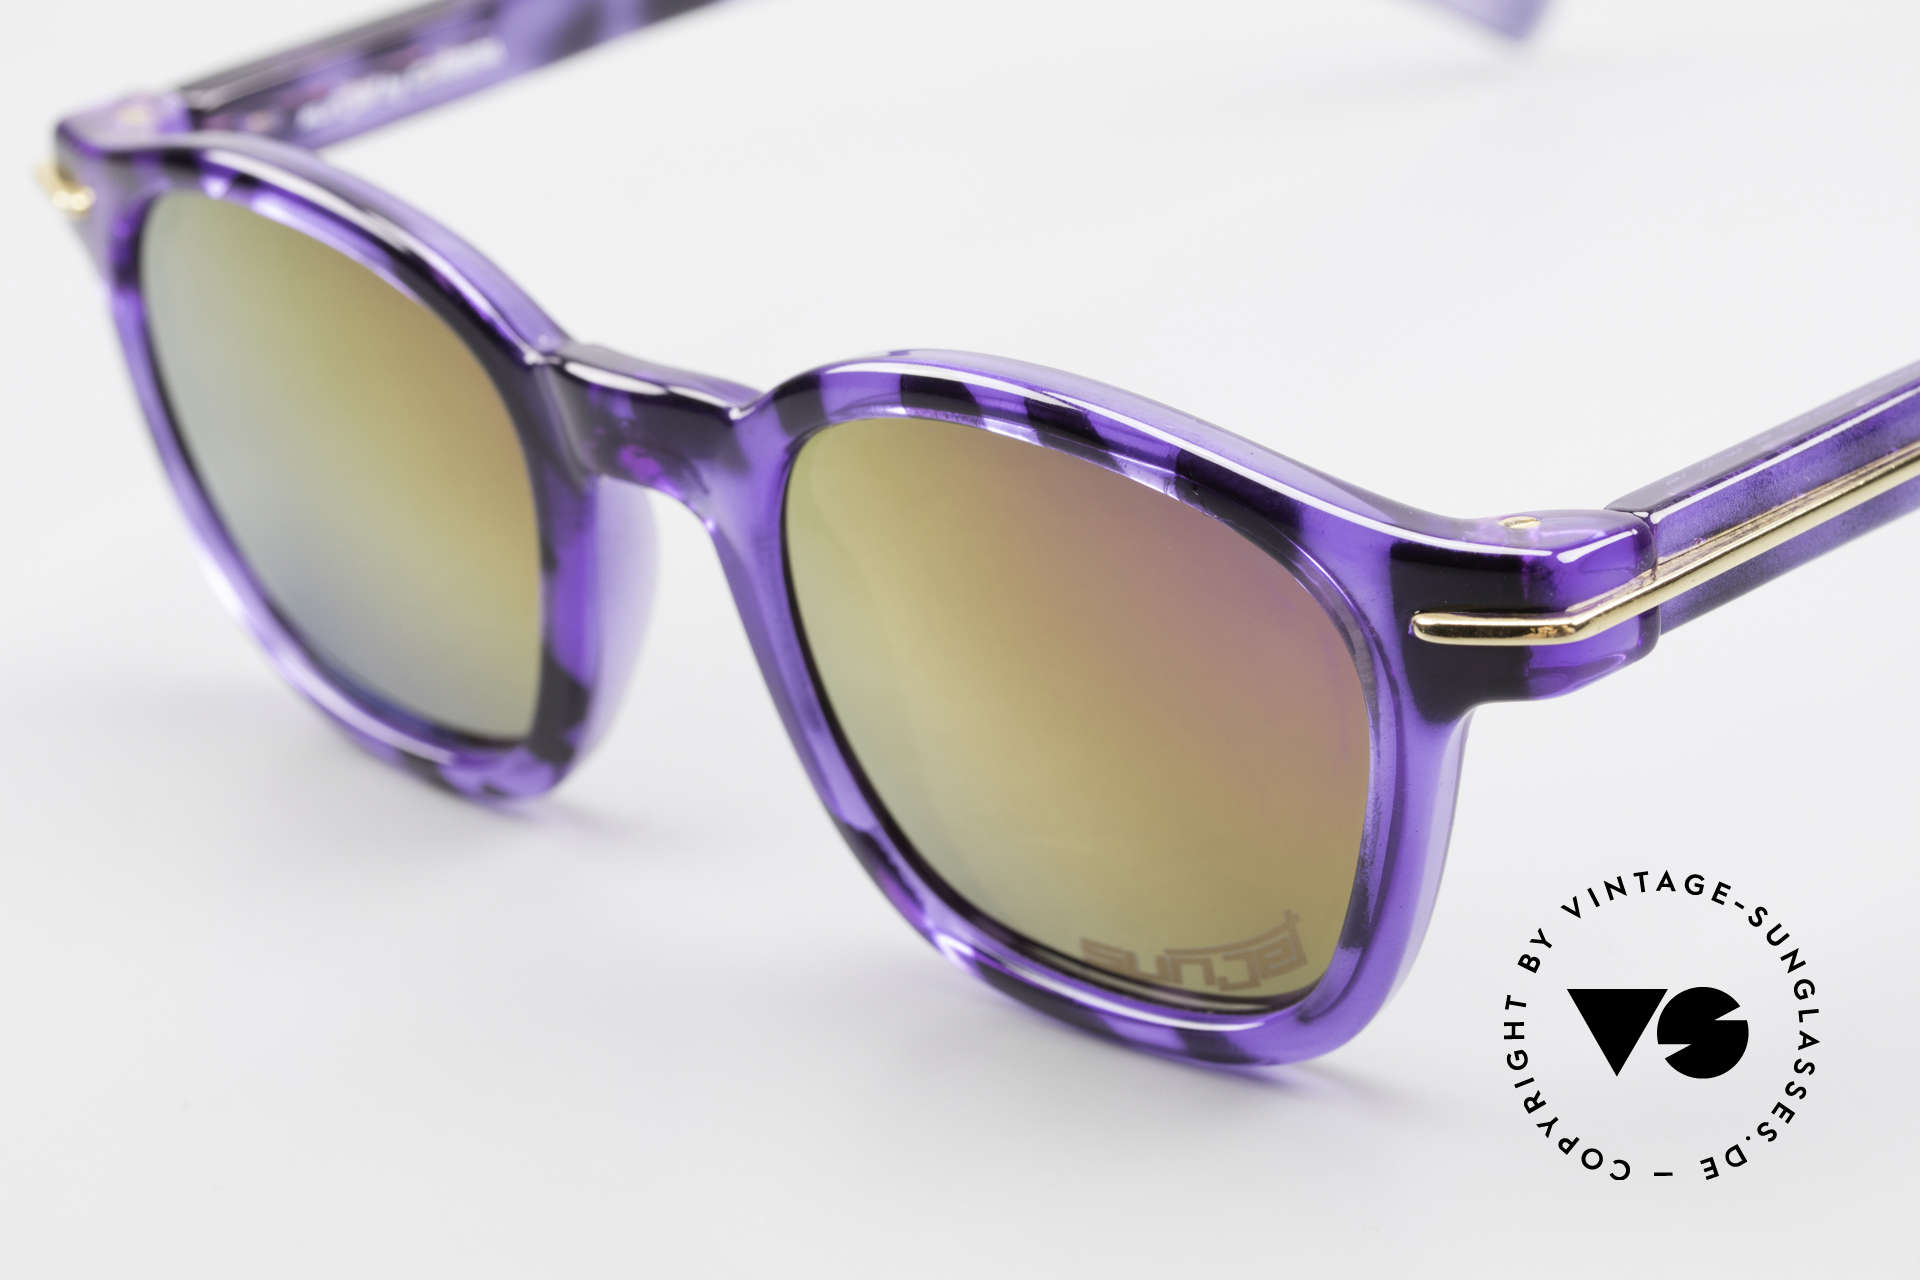 Carrera 5272 Tart Arnel Style James Dean, a classic frame design with a fancy purple-black pattern, Made for Men and Women